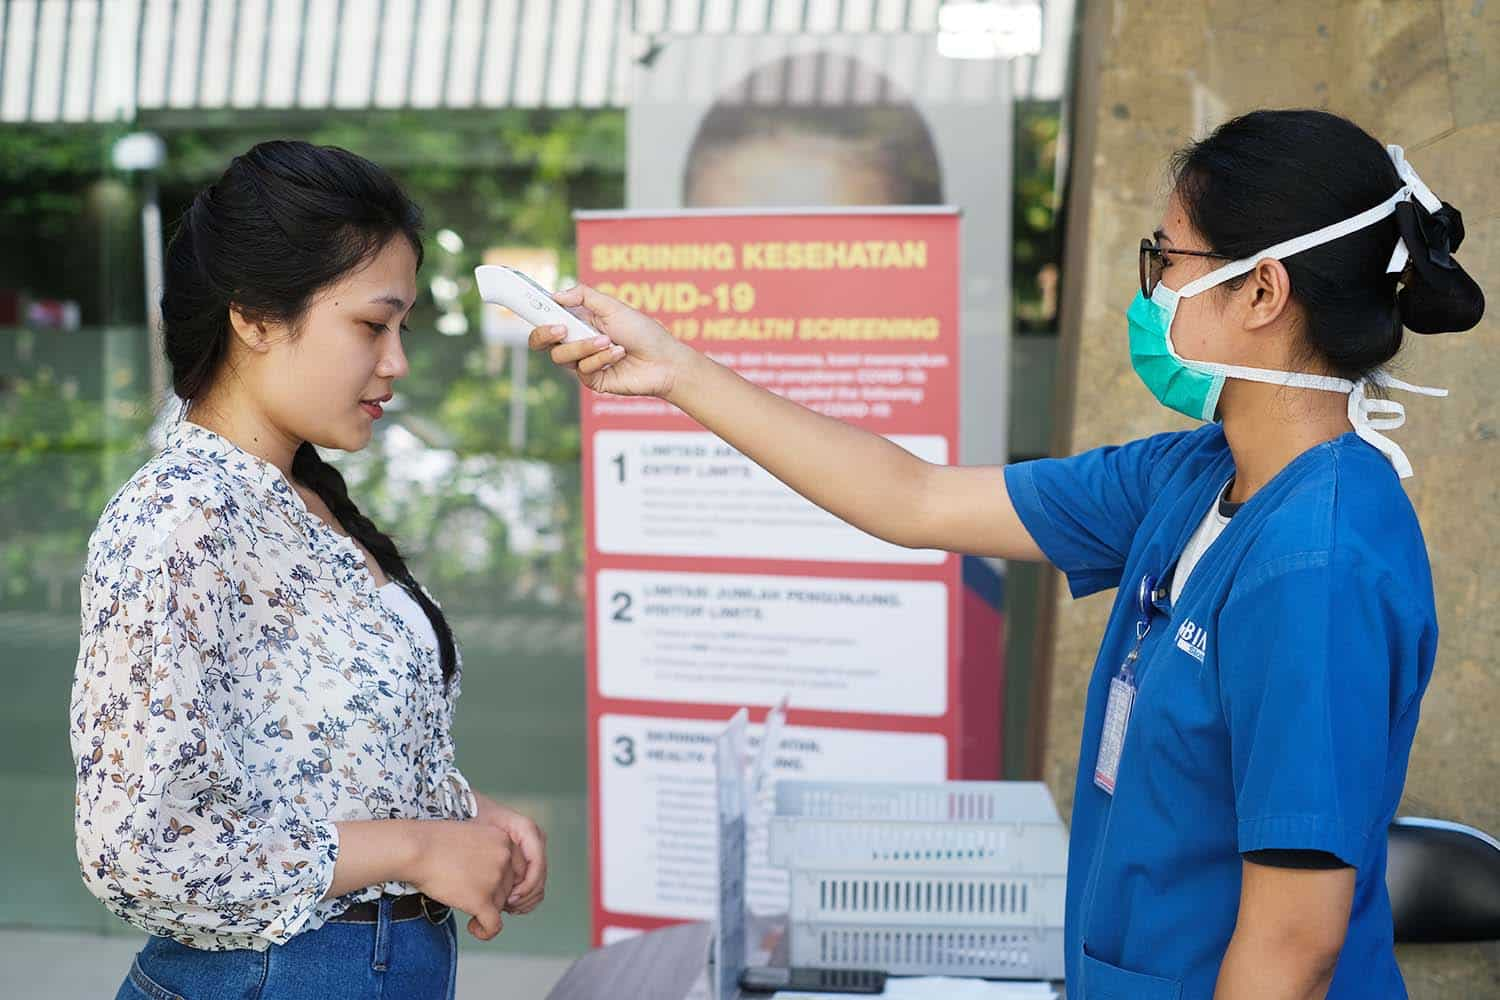 Best Practice For Safety During The Corona Virus Outbreak